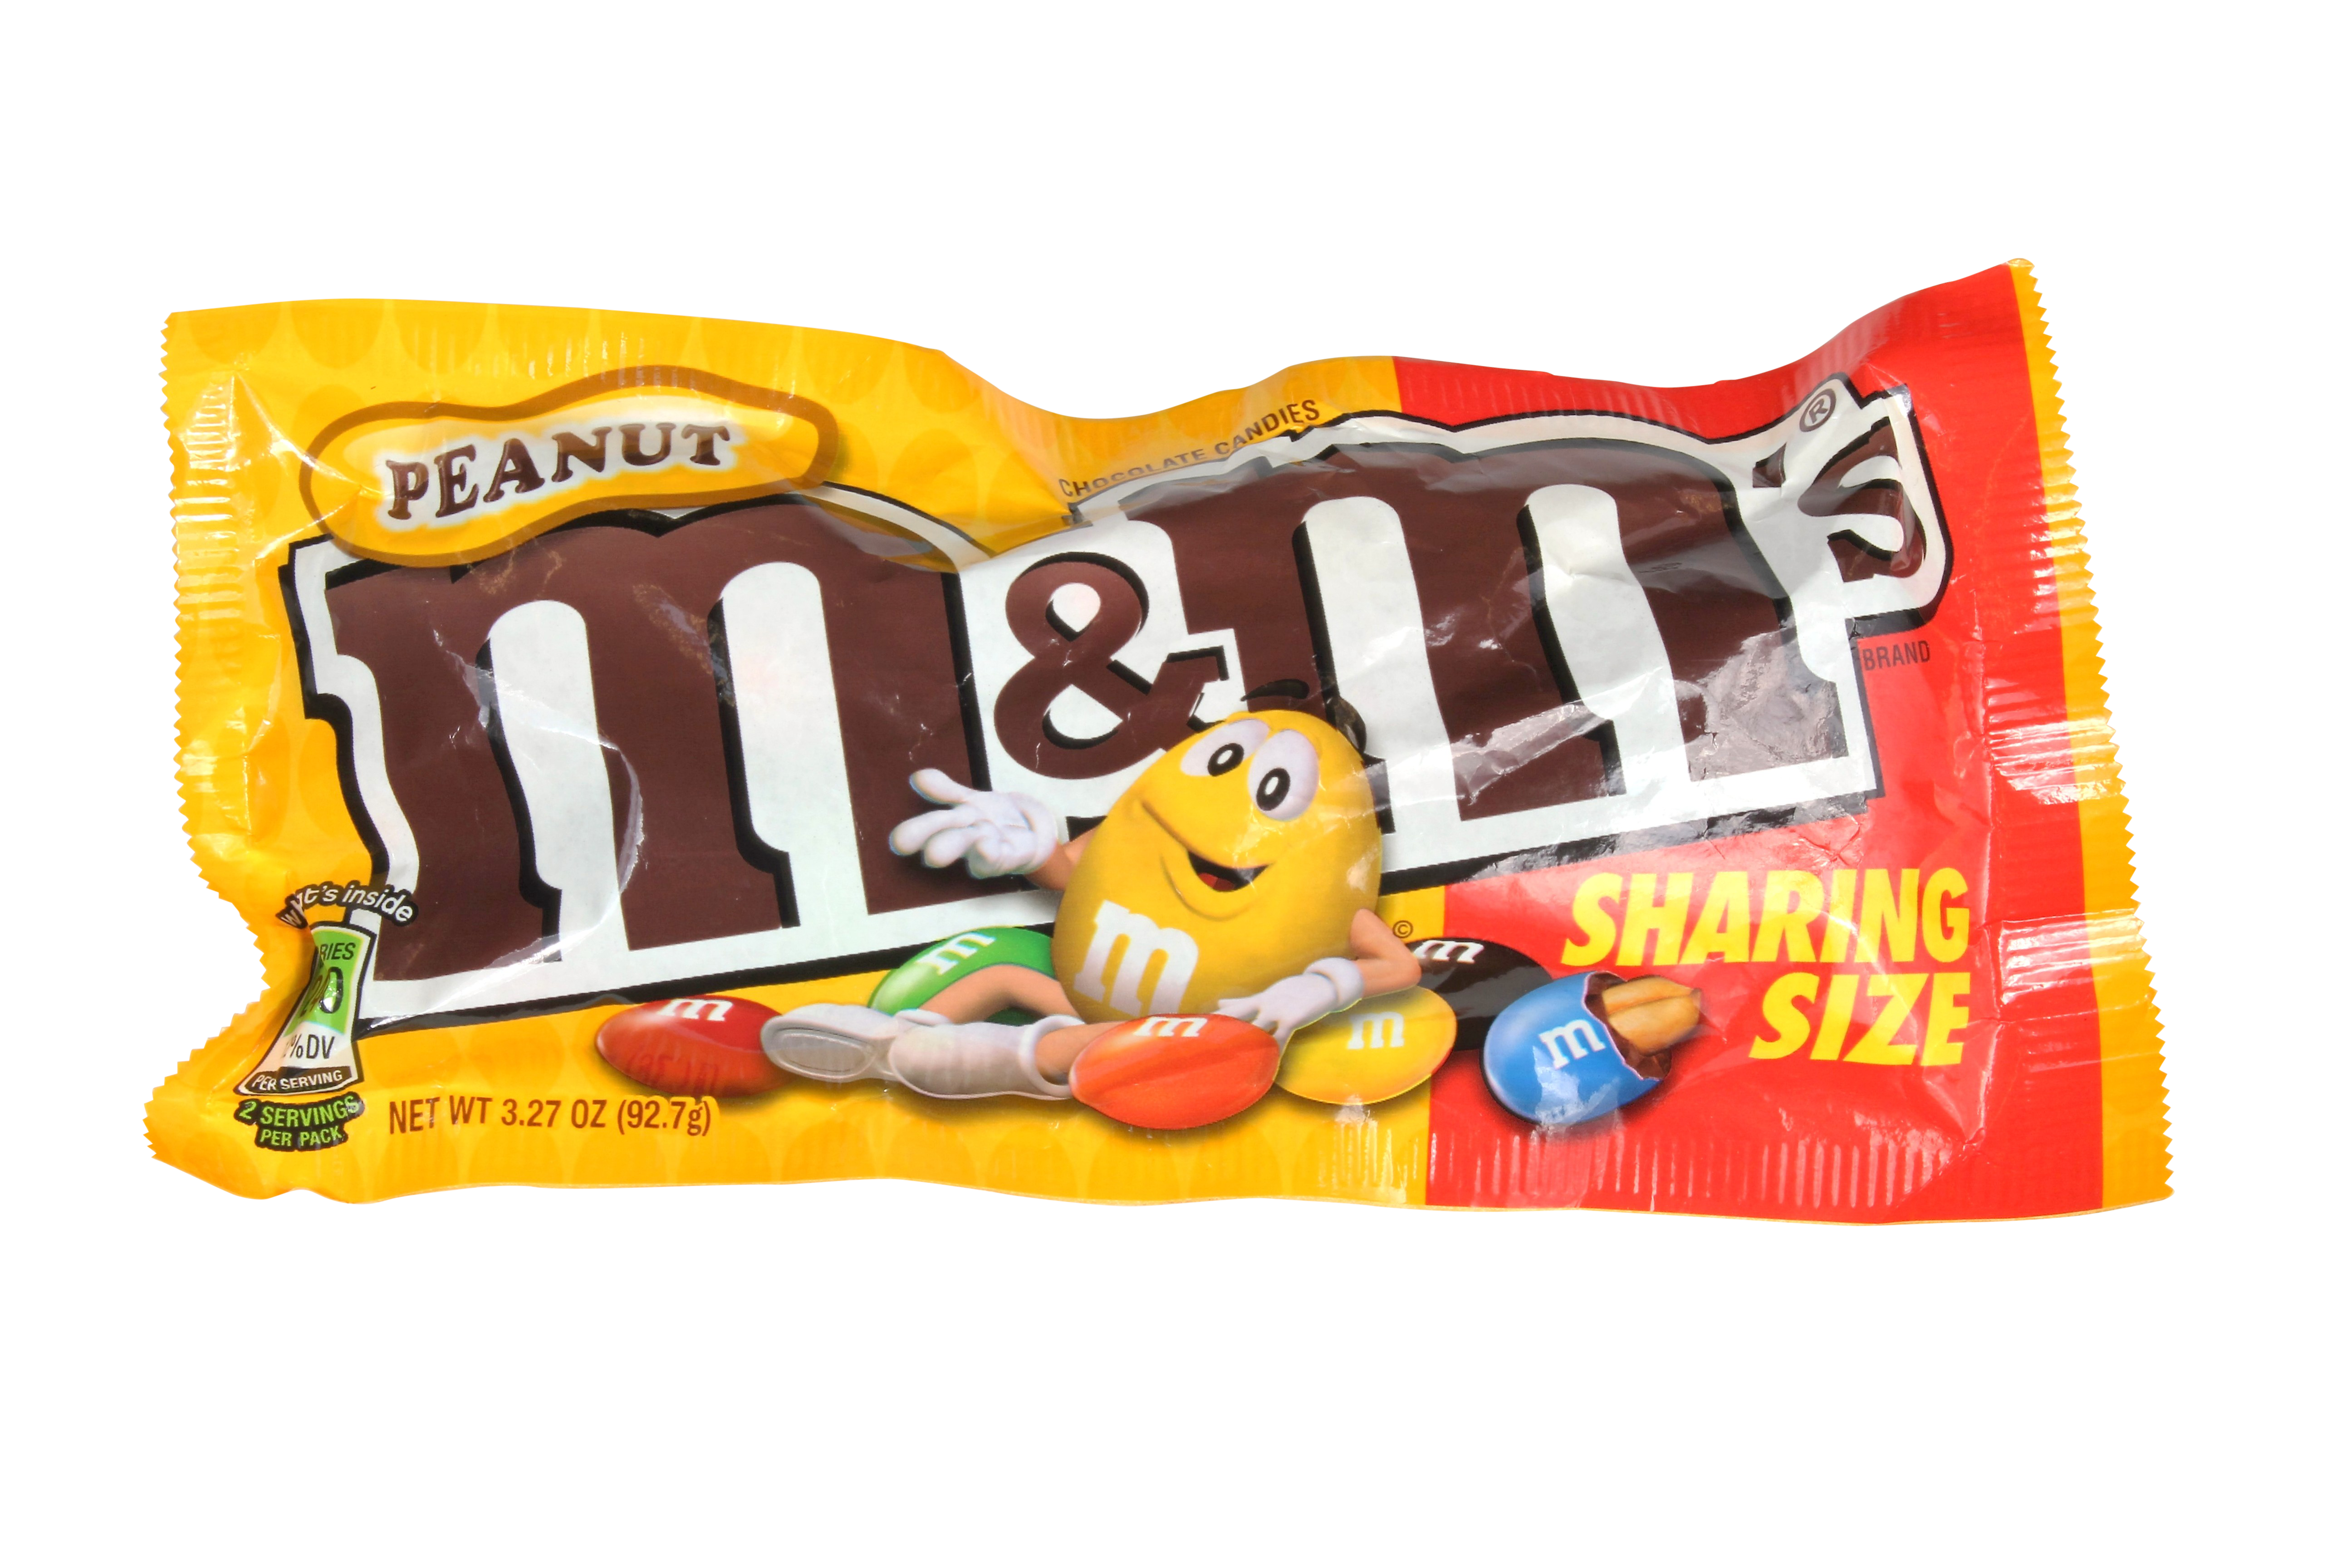 M&m candy png. M s peanut chocolate